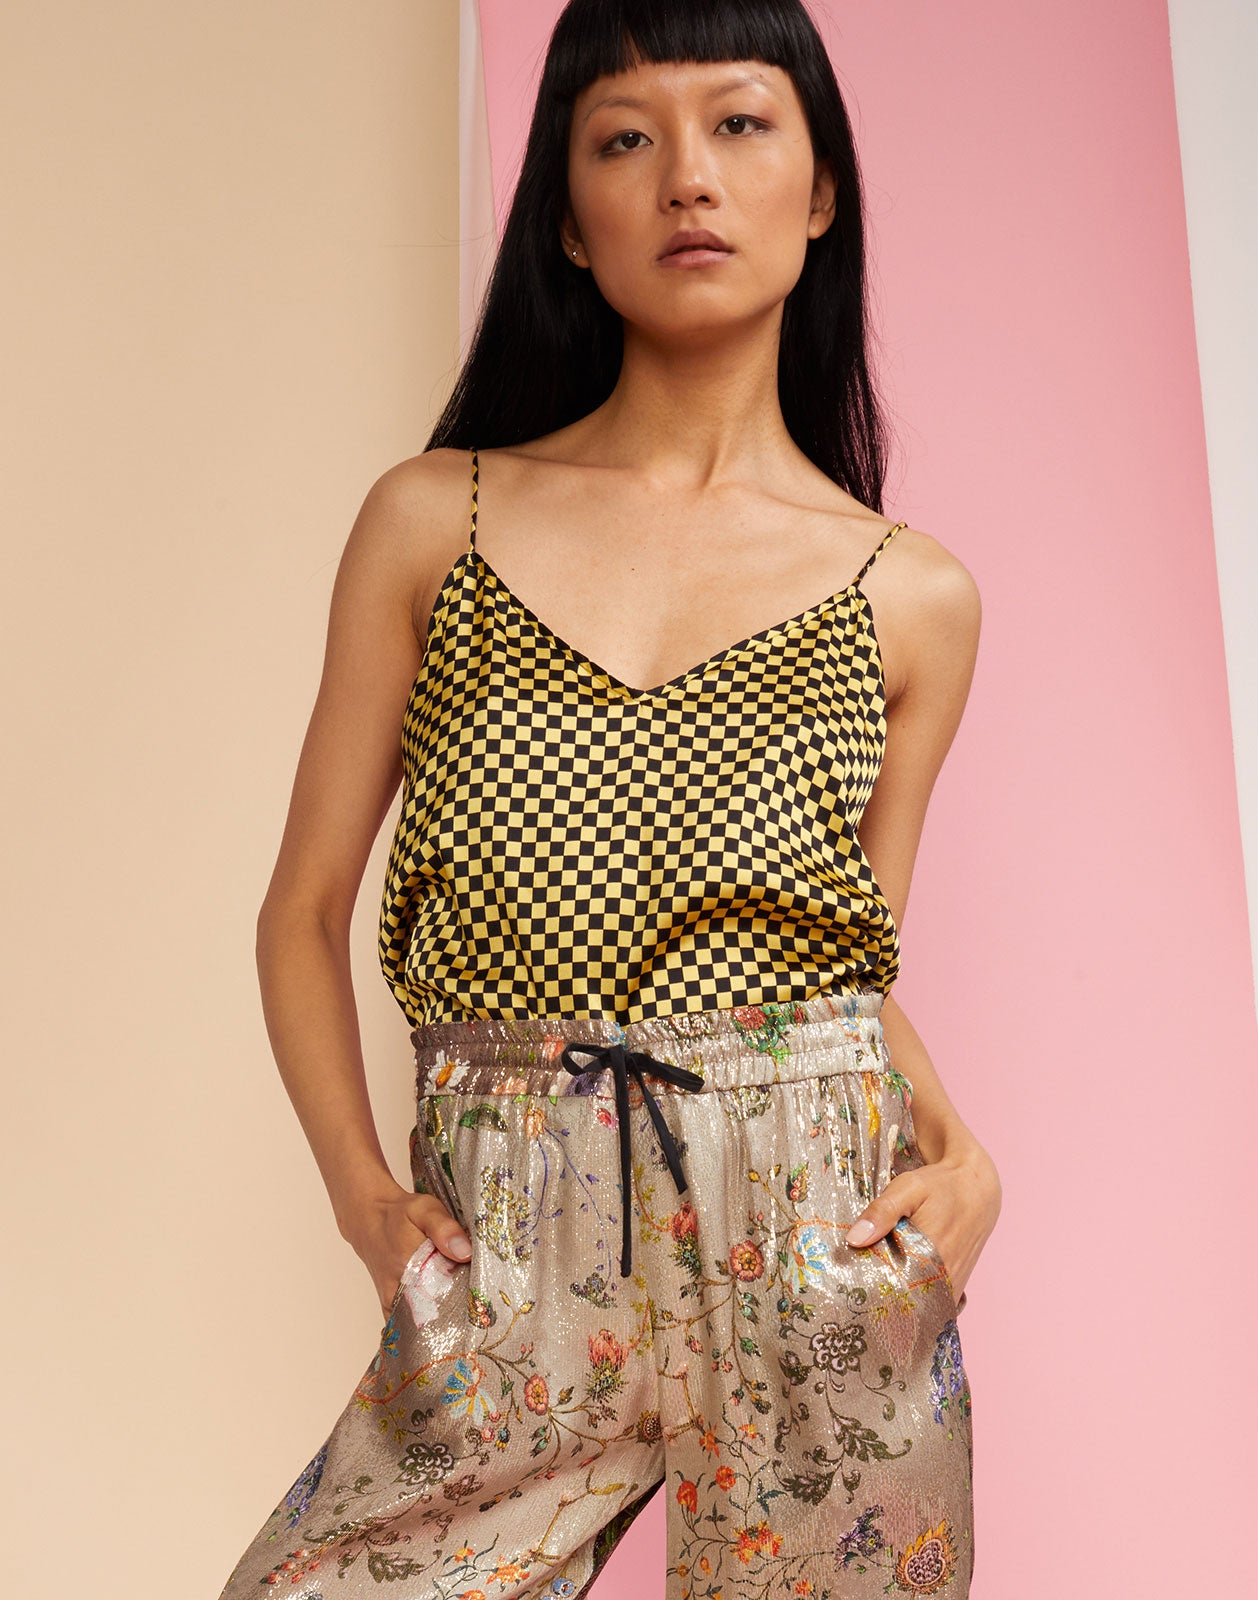 Close front view of the Checkmate spaghetti strap tank top in yellow and black check silk.